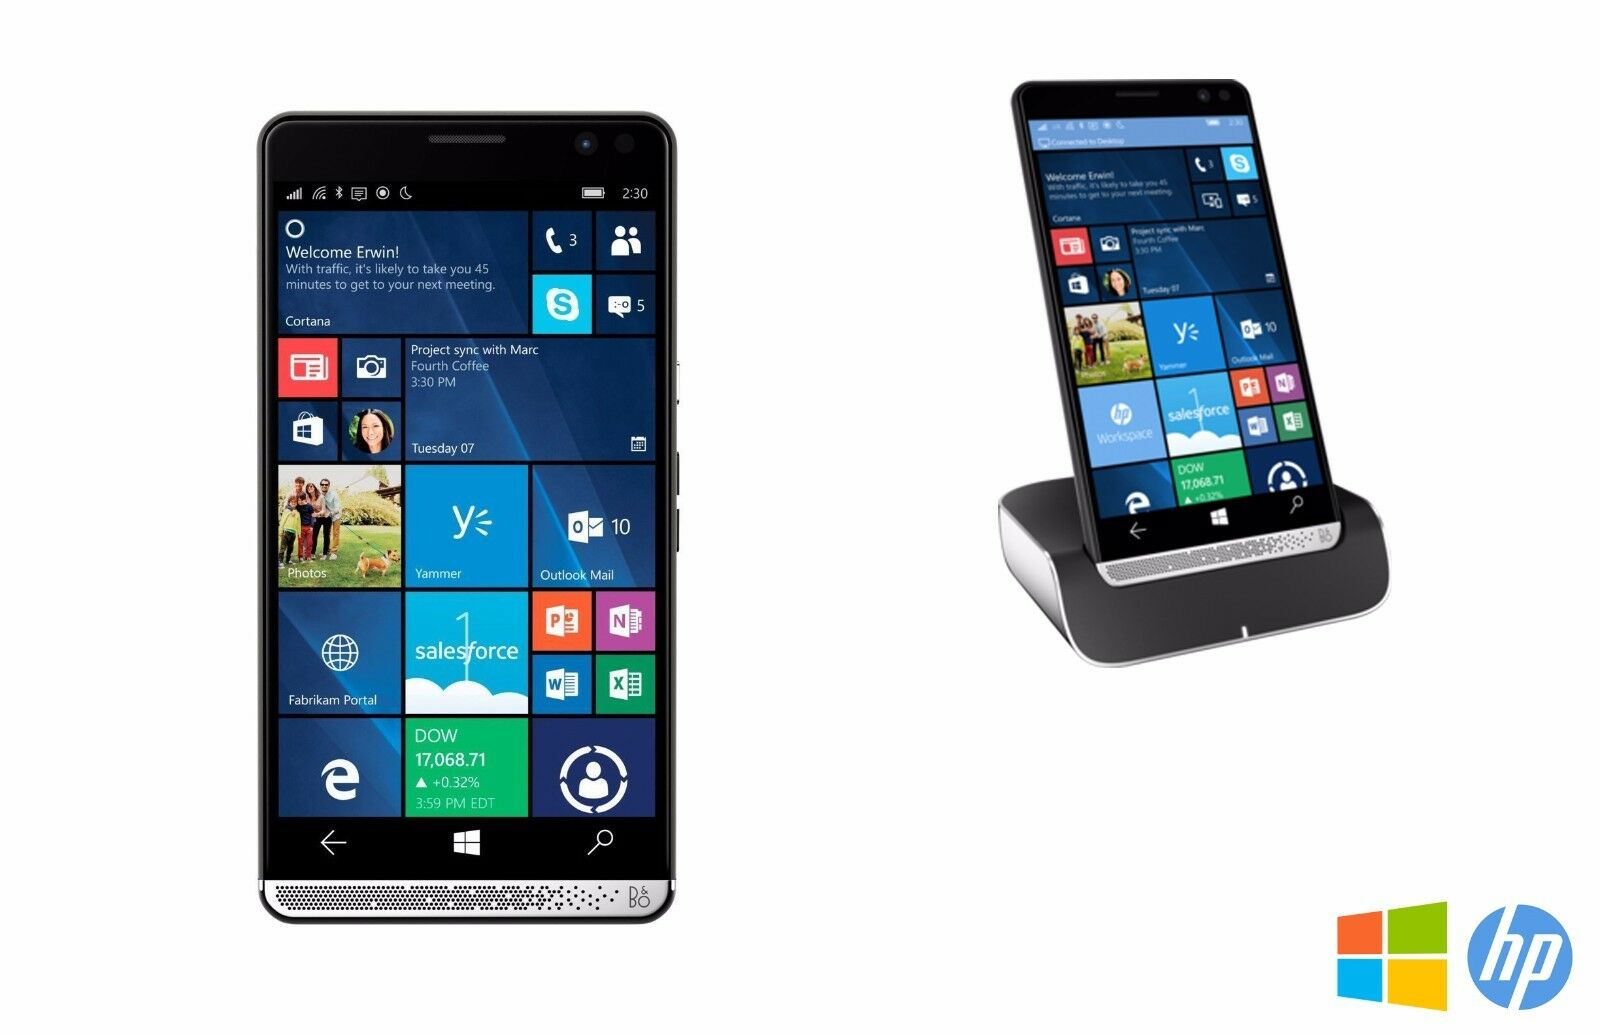 HP Elite X3 64GB Windows 10 Smartphone w/ Charging Desk Dock UNLOCKED - GRADE A